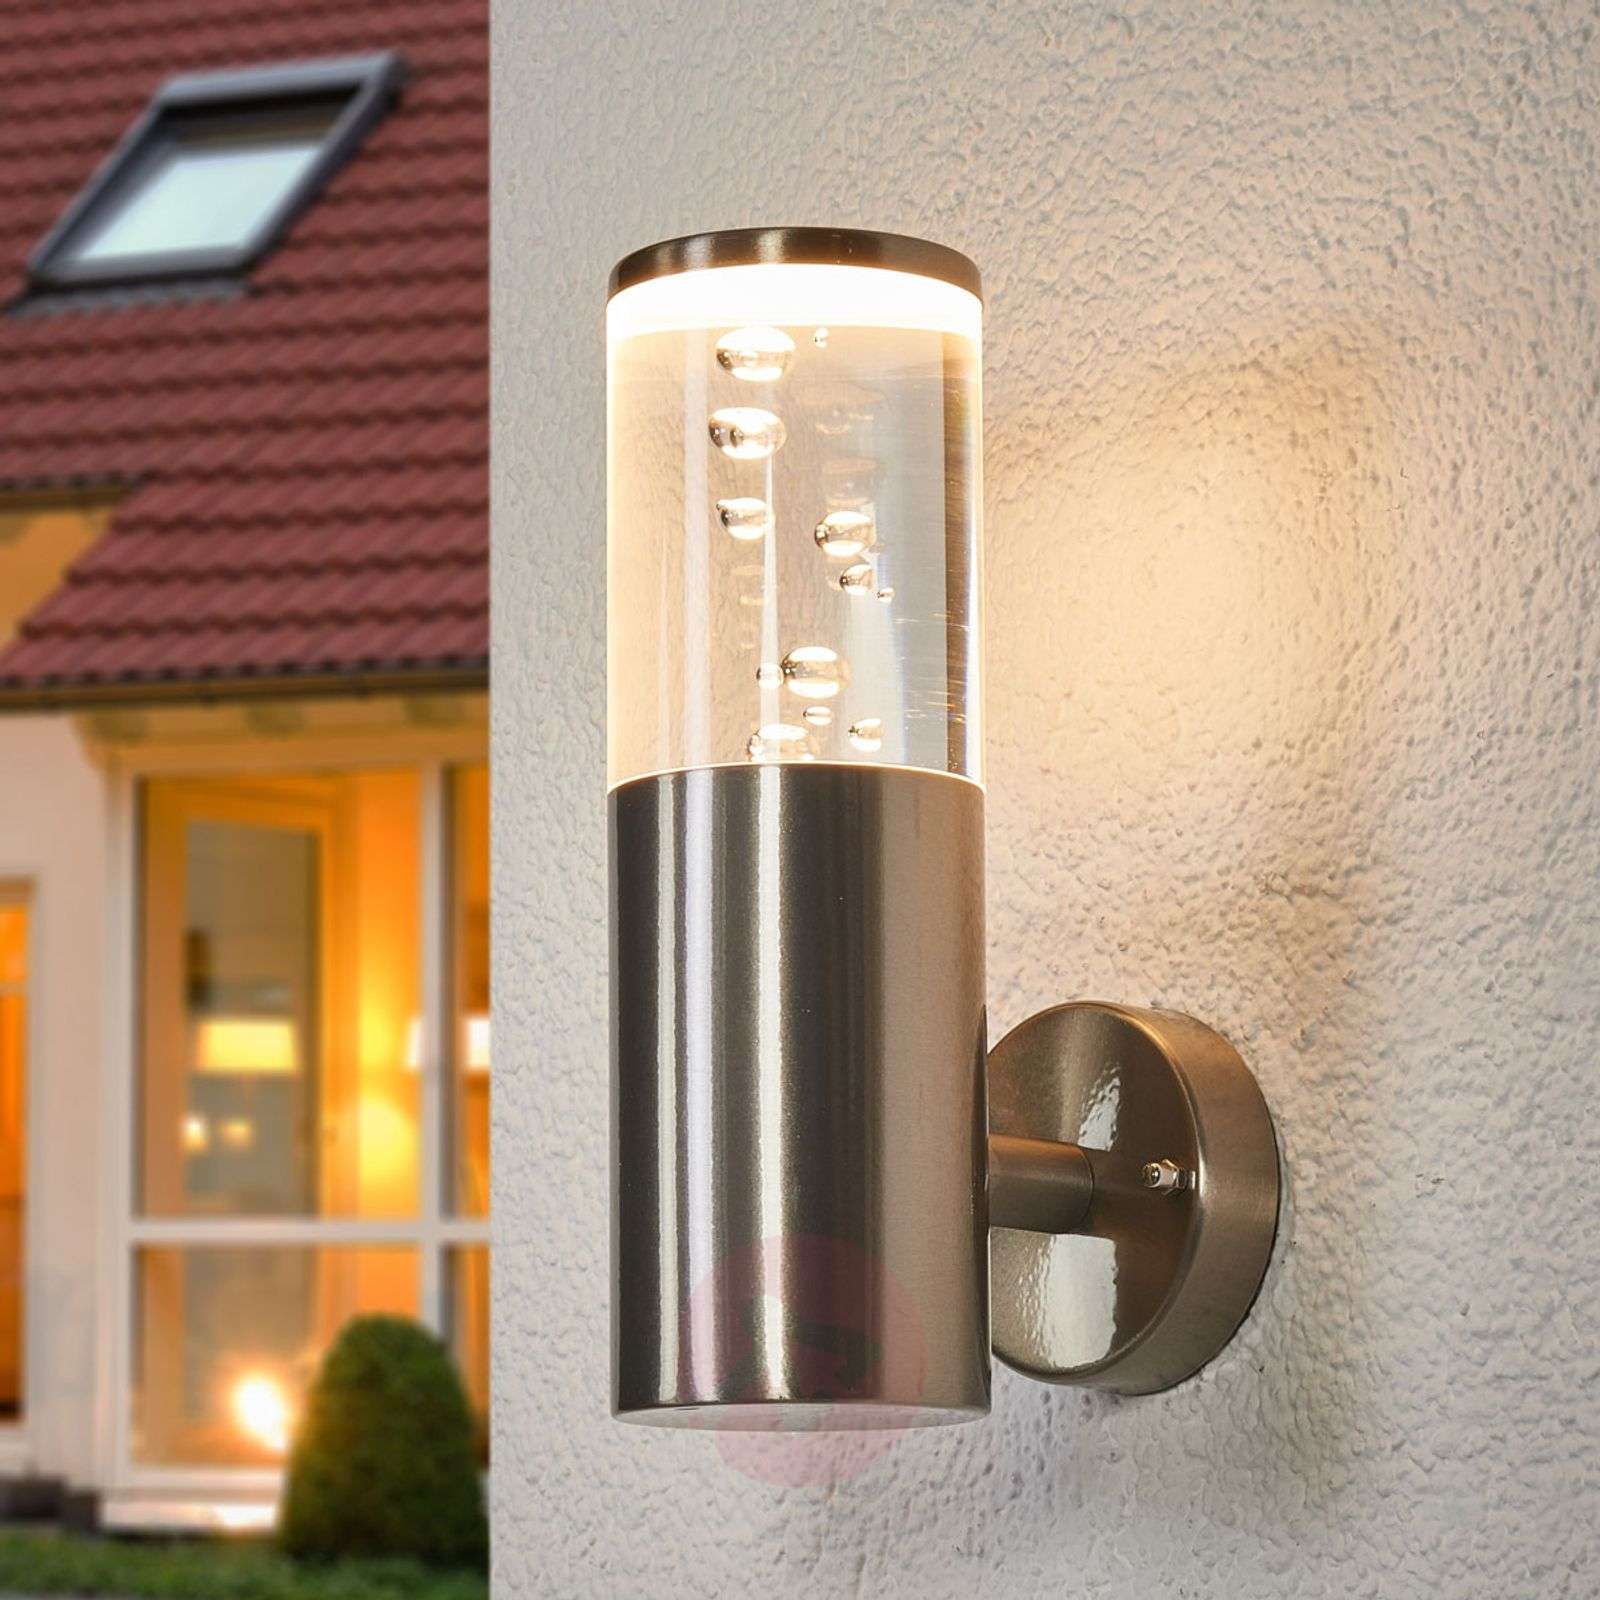 Compra aplique de pared exterior led belen con burbujas - Aplique de pared exterior ...